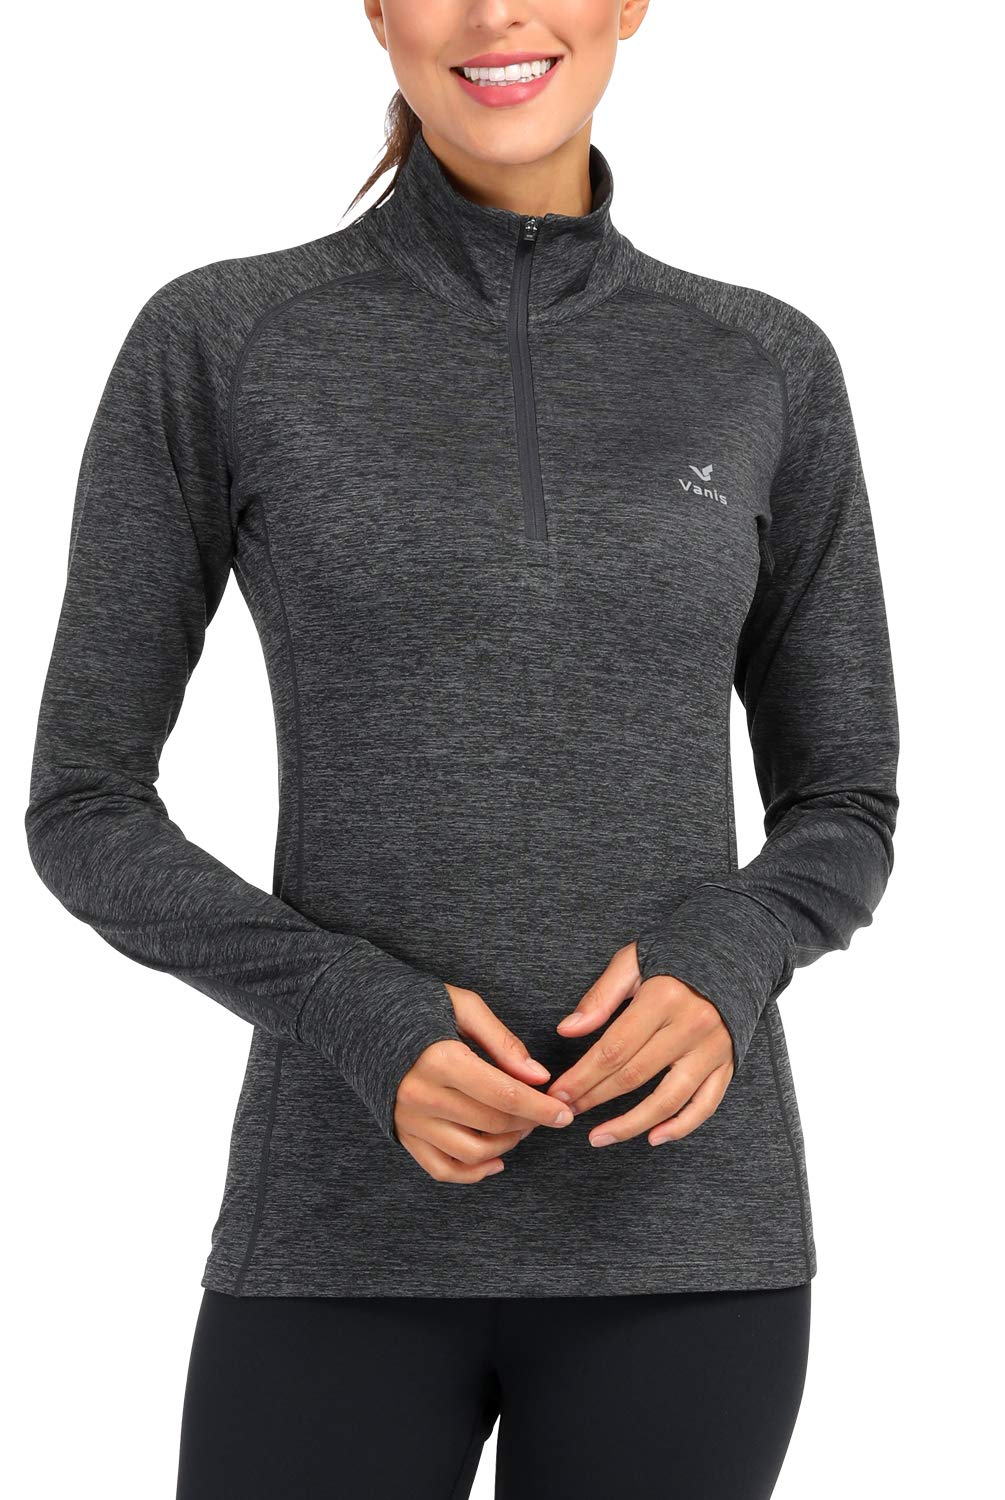 Women's Yoga Jacket 1/2 Zip Pullover Thermal Fleece Athletic Long Sleeve Running Top with Thumb Holes (Carbon Heather, X-Large) by Vanis